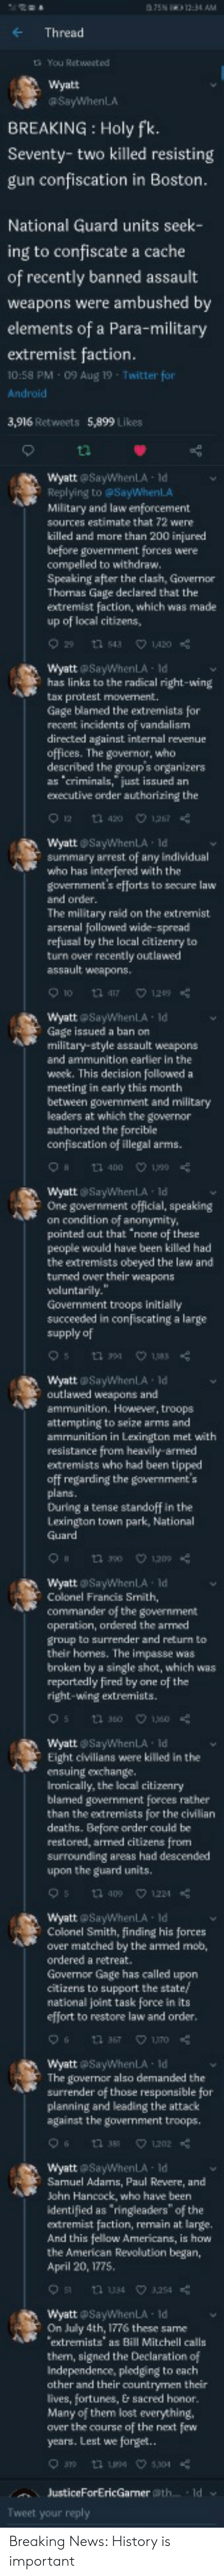 "ironically: a75N 1234 AM  Thread  ta You Retweet.ed  wyatt  aSayWhenLA  BREAKING Holy fk.  Seventy-two killed resisting  gun confiscation in Boston.  National Guard units seek-  ing to confiscate a cache  of recently banned assault  weapons were ambushed by  elements of a Para-military  extremist faction.  10:58 PM 09 Aug 19 Twitter for  Android  3,916 Retweets 5,899 Likes  Wyatt @SayWhenLA ld  Replying to @SayWhenLA  Military and law enforcement  sources estimate that 72 were-  killed and more than 200 injured  before government forces were  compelled to withdraw.  Speaking after the clash, Governor  Thomas Gage declared that the  extremist faction, which was made  up of local citizens,  29 tn 543  1,420  Wyatt @SayWhenLA Id  has links to the radical right-wing  tax protest movement.  Gage blamed the extremists for  recent incidents of vandalism  directed against internal revenue  offices. The governor, who  described the group's organizers  as 'criminals,"" just issued an  executive order authorizing the  12t 420 1267  wyatt SayWhenLA ld  summary arrest of any individual  who has interfered with the  government's efforts to secure law  and order.  The military raid on the extremist  arsenal followed wide-spread  refusal by the local citizenry to  turn over recently outlawed  assault weapons  1n 417  129  WyattSayWhenLA Id  Gage issued a ban on  military-style assault weapons  and ammunition earlier in the  woek. This decision followed a  meeting in early this month  between govermment and military  leaders at which the governor  authorized the forcible  confiscation of illegal arms.  1 400 190  Wyatt SayWhenLA ld  One government official, speaking  on condition of anonymity  pointed out that ""none of these  people would have been killed had  the extremists obeyed the law and  turned over their weapons  voluntarily.  Government troops initially  succeeded in confiscating a large  supply of  183  Wyatt SayWhenLA ld  outlawed weapons and  ammunition. However, troops  attempting to seize arms and  ammunition in Lexington met with  resistance from heavily armed  extremists who had been tipped  aff regarding the government's  plans.  During a tense standoff in the  Lexington town park, National  Guard  t 1209  1 0  Wyatt SayWhenLA Id  Colonel Francis Smith,  commander of the government  operation, ordered the armed  group to surrender and return to  their homes. The impasse was  broken by a single shot, which was  repartedly fired by one  of the  right-wing extremists.  tu 3s0 160  Q1360  Wyatt SayWhenLA Id  Eight civilians were killed in the  Aensuing exchange.  Ironically, the local citizenry  blamed government forces rather  than the extremists for the civilian  deaths. Before order could be  restored, armed citizens from  surrounding areas had descended  upon the guard units  1 409 1224  Wyatt @SayWhenLA Id  Colonel Smith, finding his forces  aver matched by the armed mob,  ordered a retreat.  Governor Gage has called upon  citizens to support the state  national joint task force in its  effort to restore law and order.  n 367  uTO  Wyatt @SayWhenLA Id  The governor also demanded the  surrender of those responsible for  planning and leading the attack  against the government troops  t 1202  6  n 38  WyattSayWhenLA Id  Samuel Adams, Paul Revere, and  John Hancock, who have been  identified as ringleaders"" of the  extremist faction, remain at large.  And this fellow Americans, is how  the American Revolution began,  April 20, 1775  n u34 254  Wyatt SayWhenLA Id  On July 4th, 1776 these same  extremists as Bill Mitchell calls  them, signed the Declaration of  Independence, pledging to each  ather and their countrymen their  lives, fortunes, & sacred honor.  Many of them lost everything,  aver the course of the next few  years. Lest we forget..  un 504  JusticeForEricGarmer @th.. Id  Tweet your reply Breaking News: History is important"